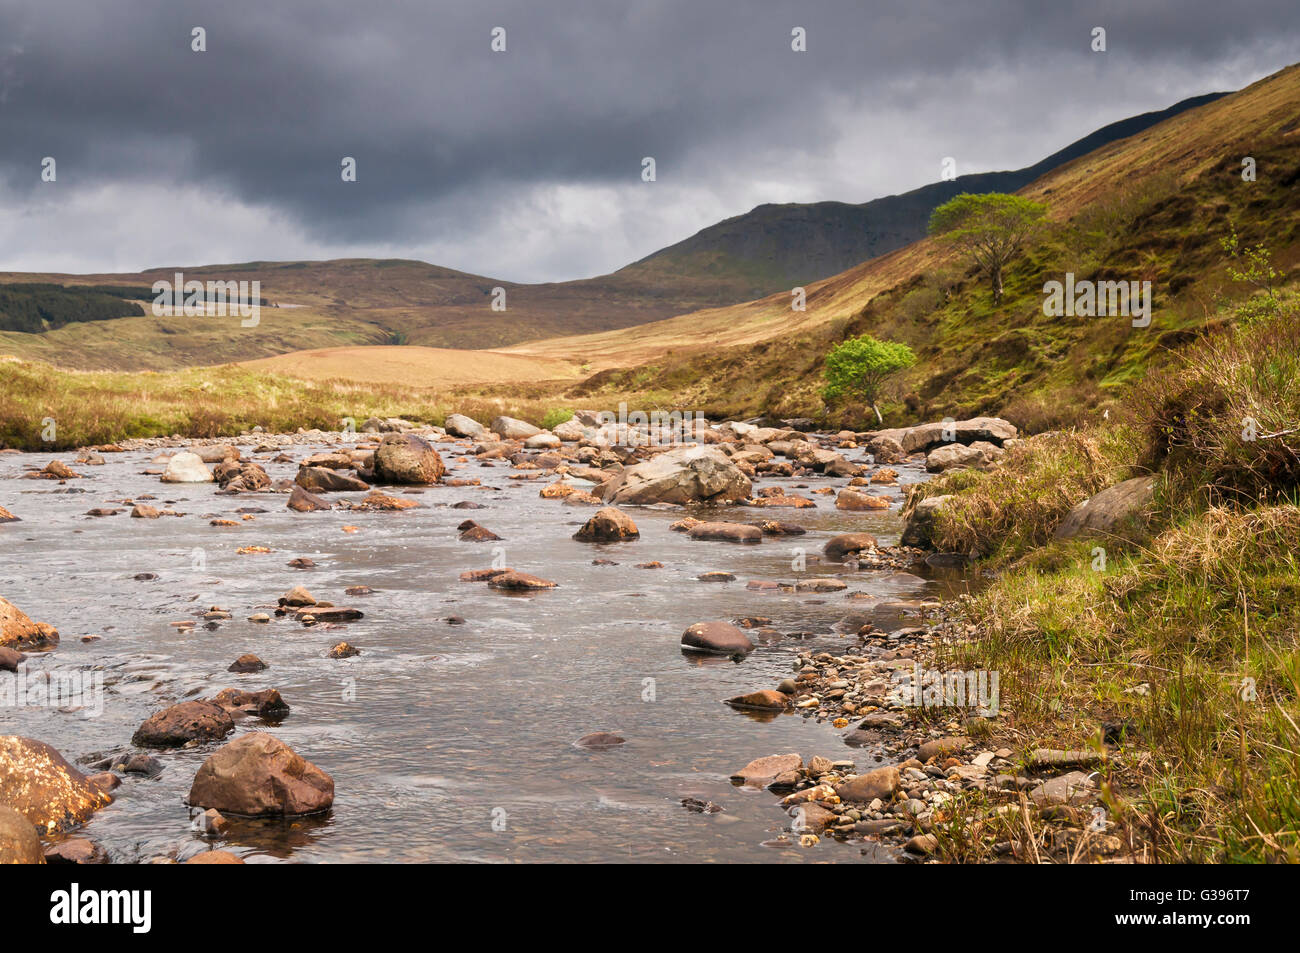 A photograph looking up stream along the River Brittle with a threatening sky, on the Isle of Skye in Scotland. Stock Photo